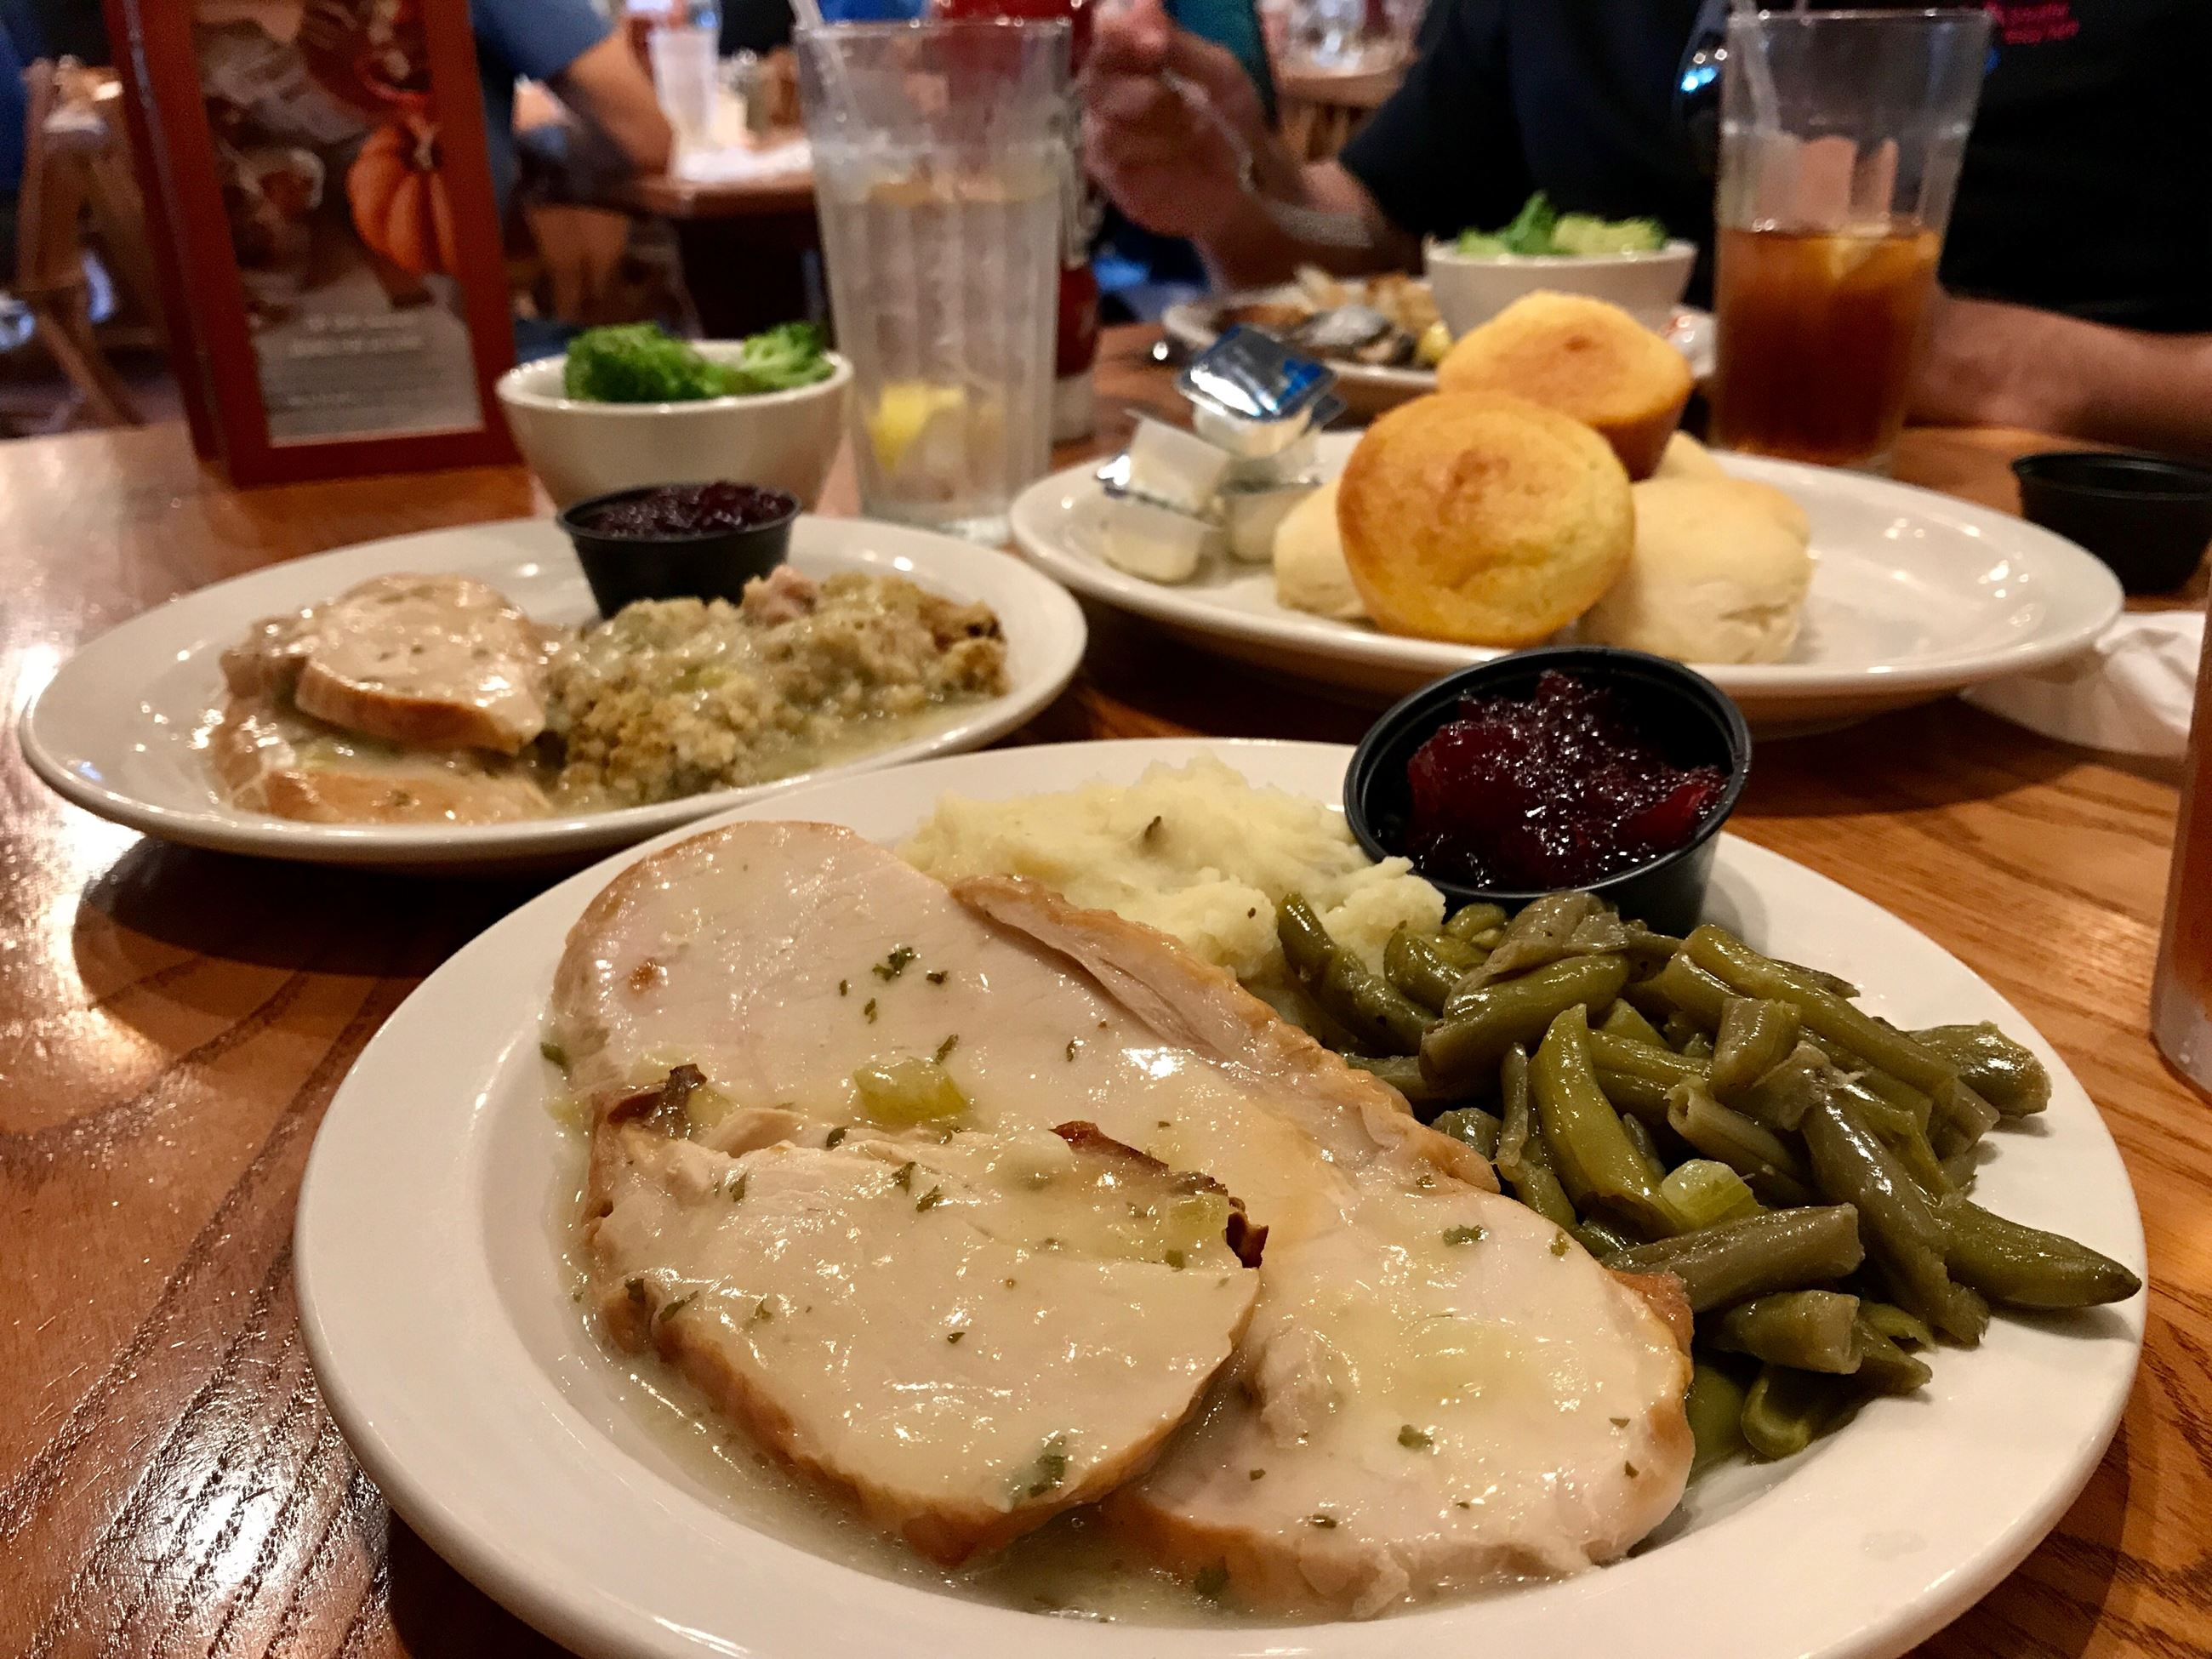 Turkey Thursday from Cracker Barrel